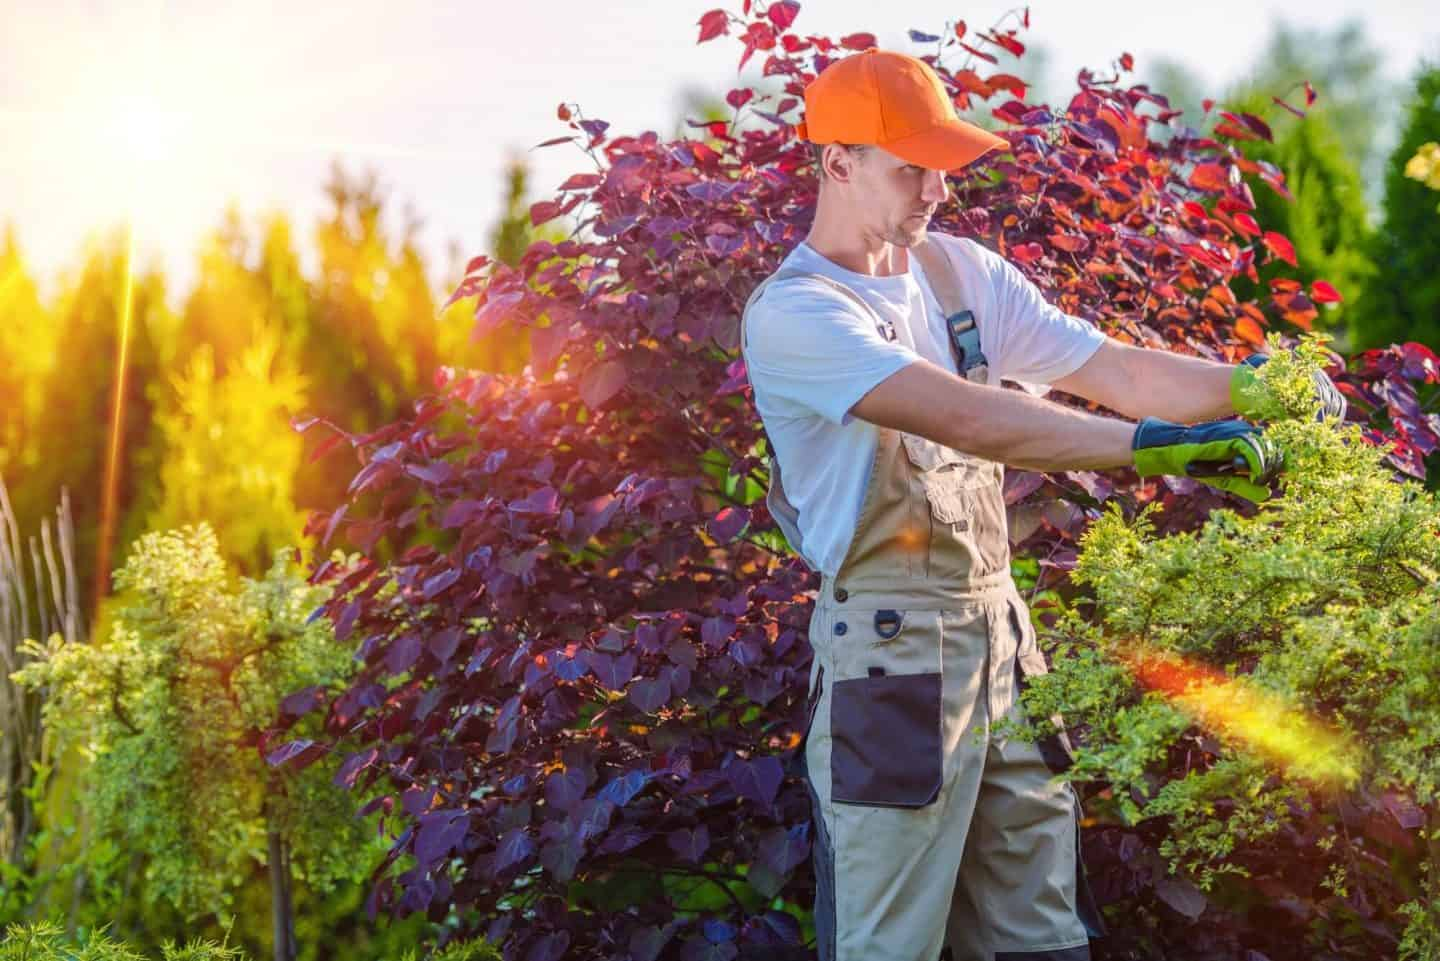 Keeping your trees and shrubs cut back and tidy will deter potential burglars from hiding in them.